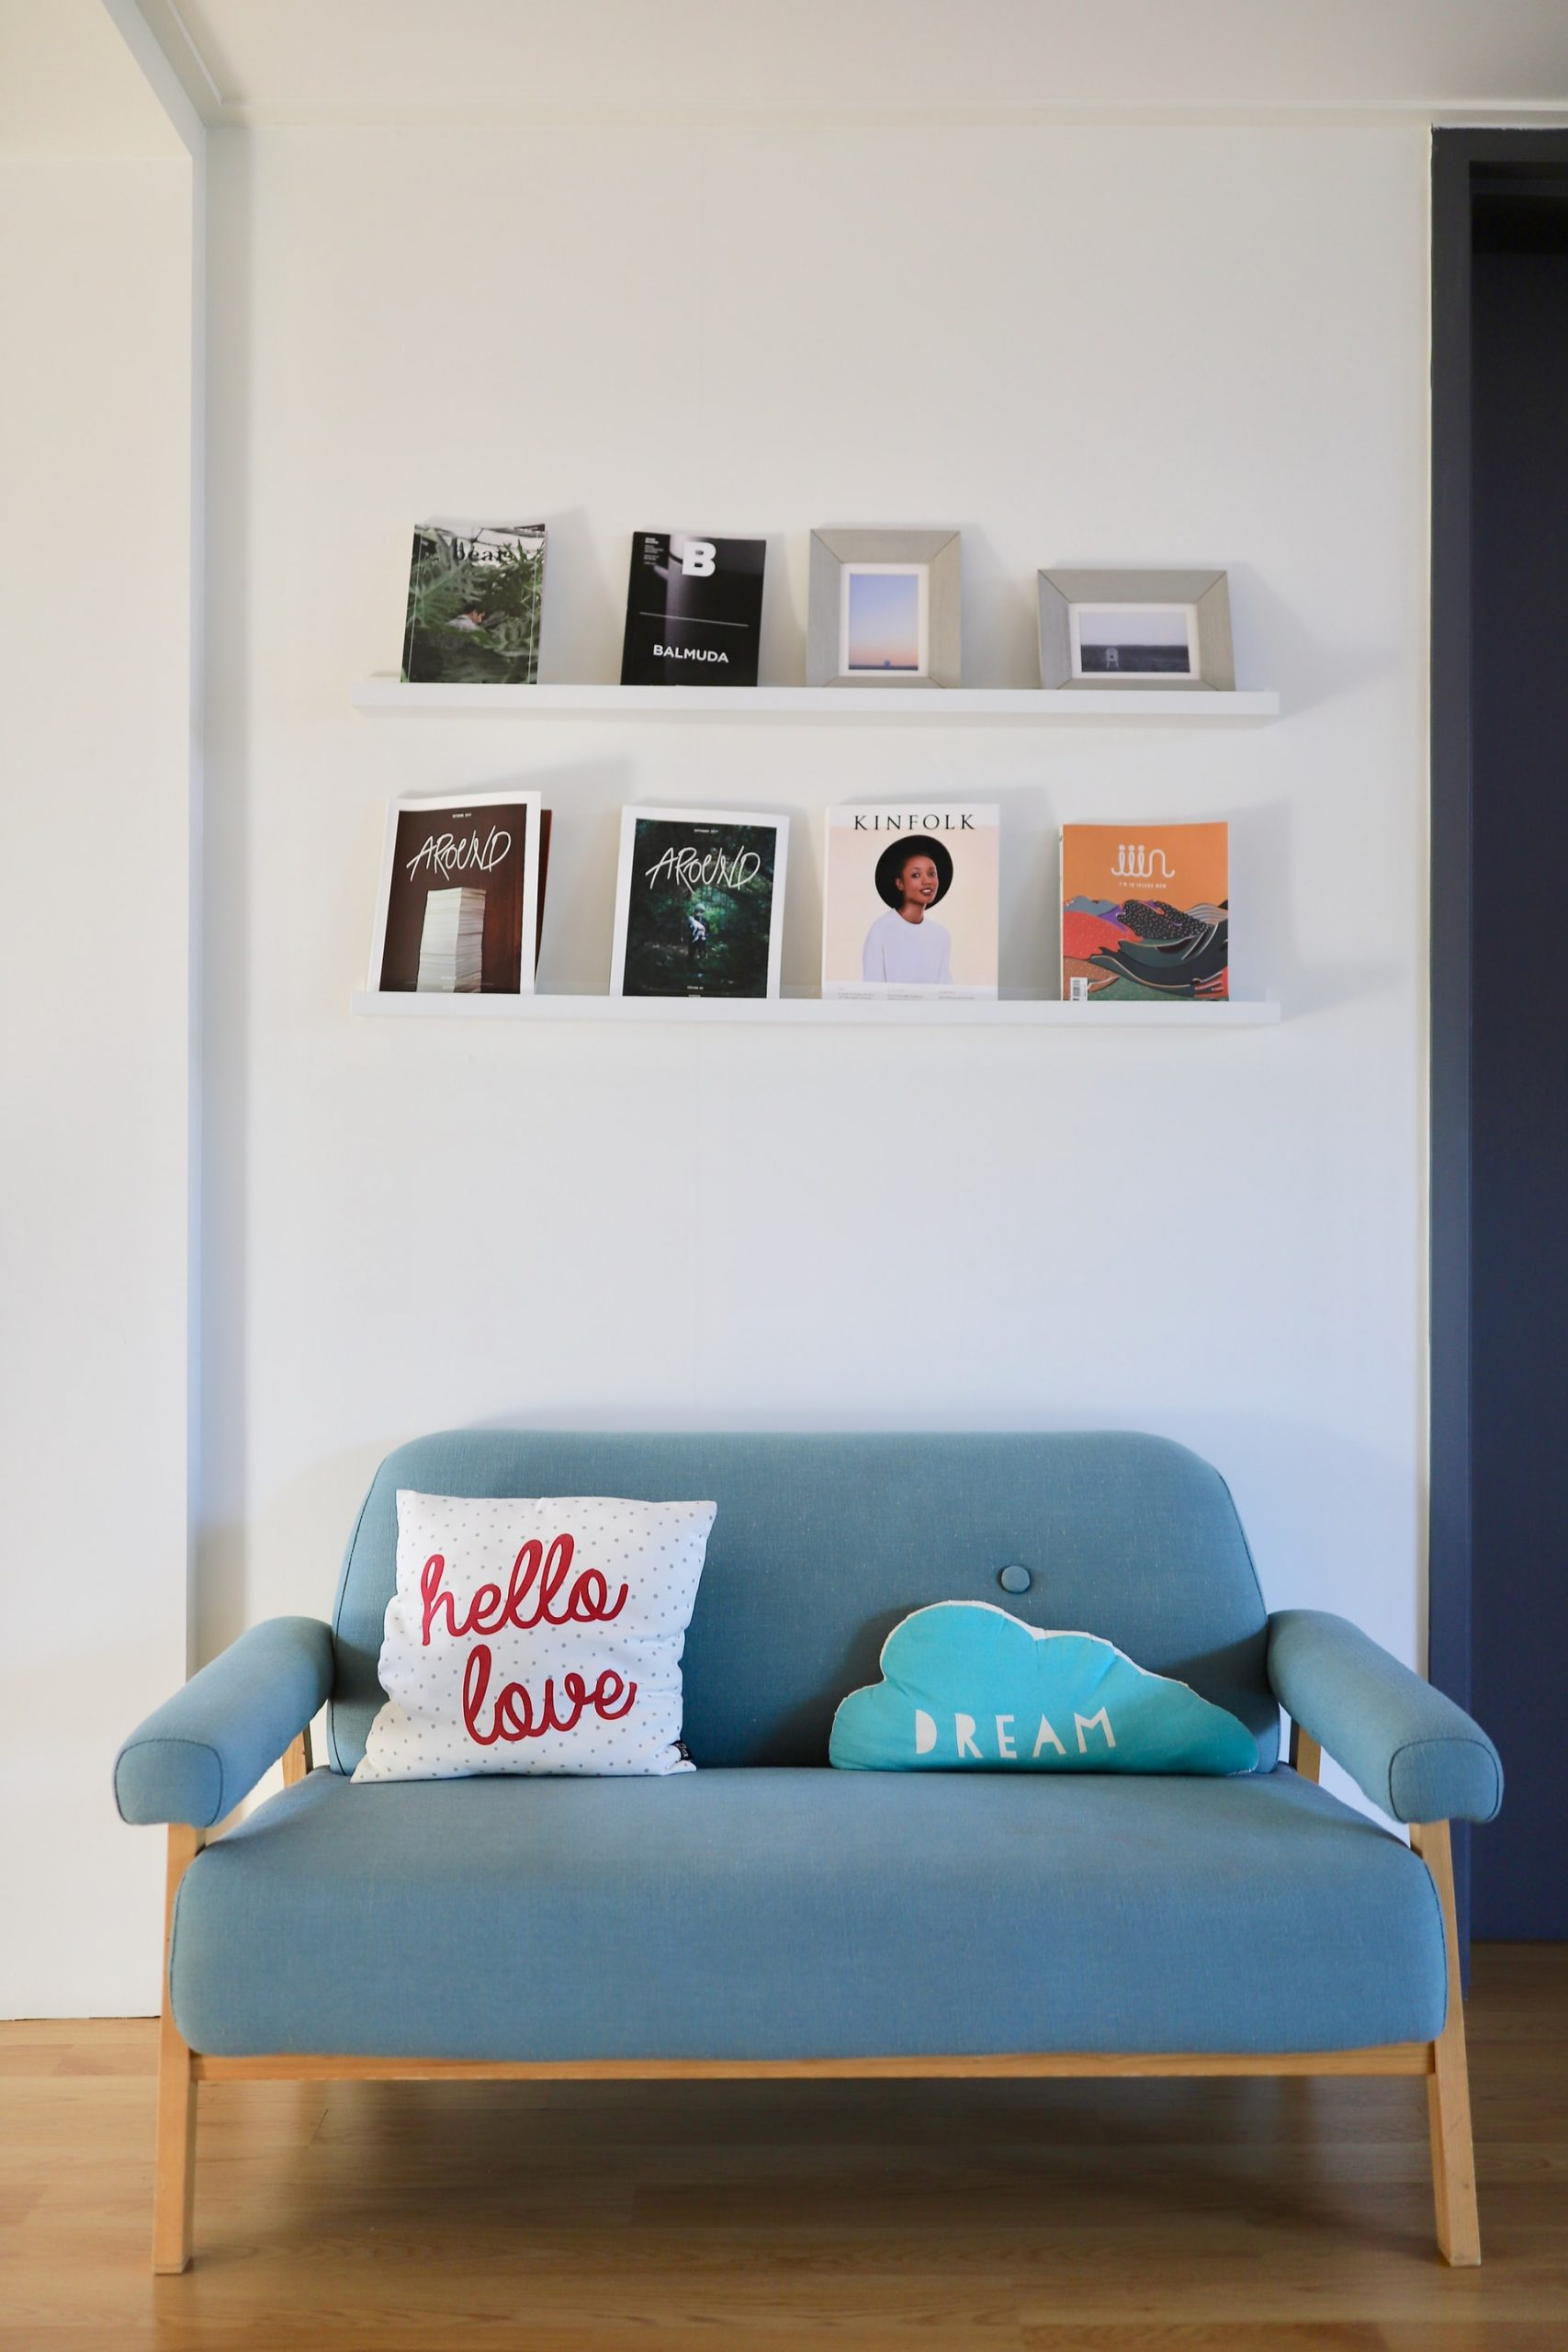 couch with cushions and display of personal items on shelves